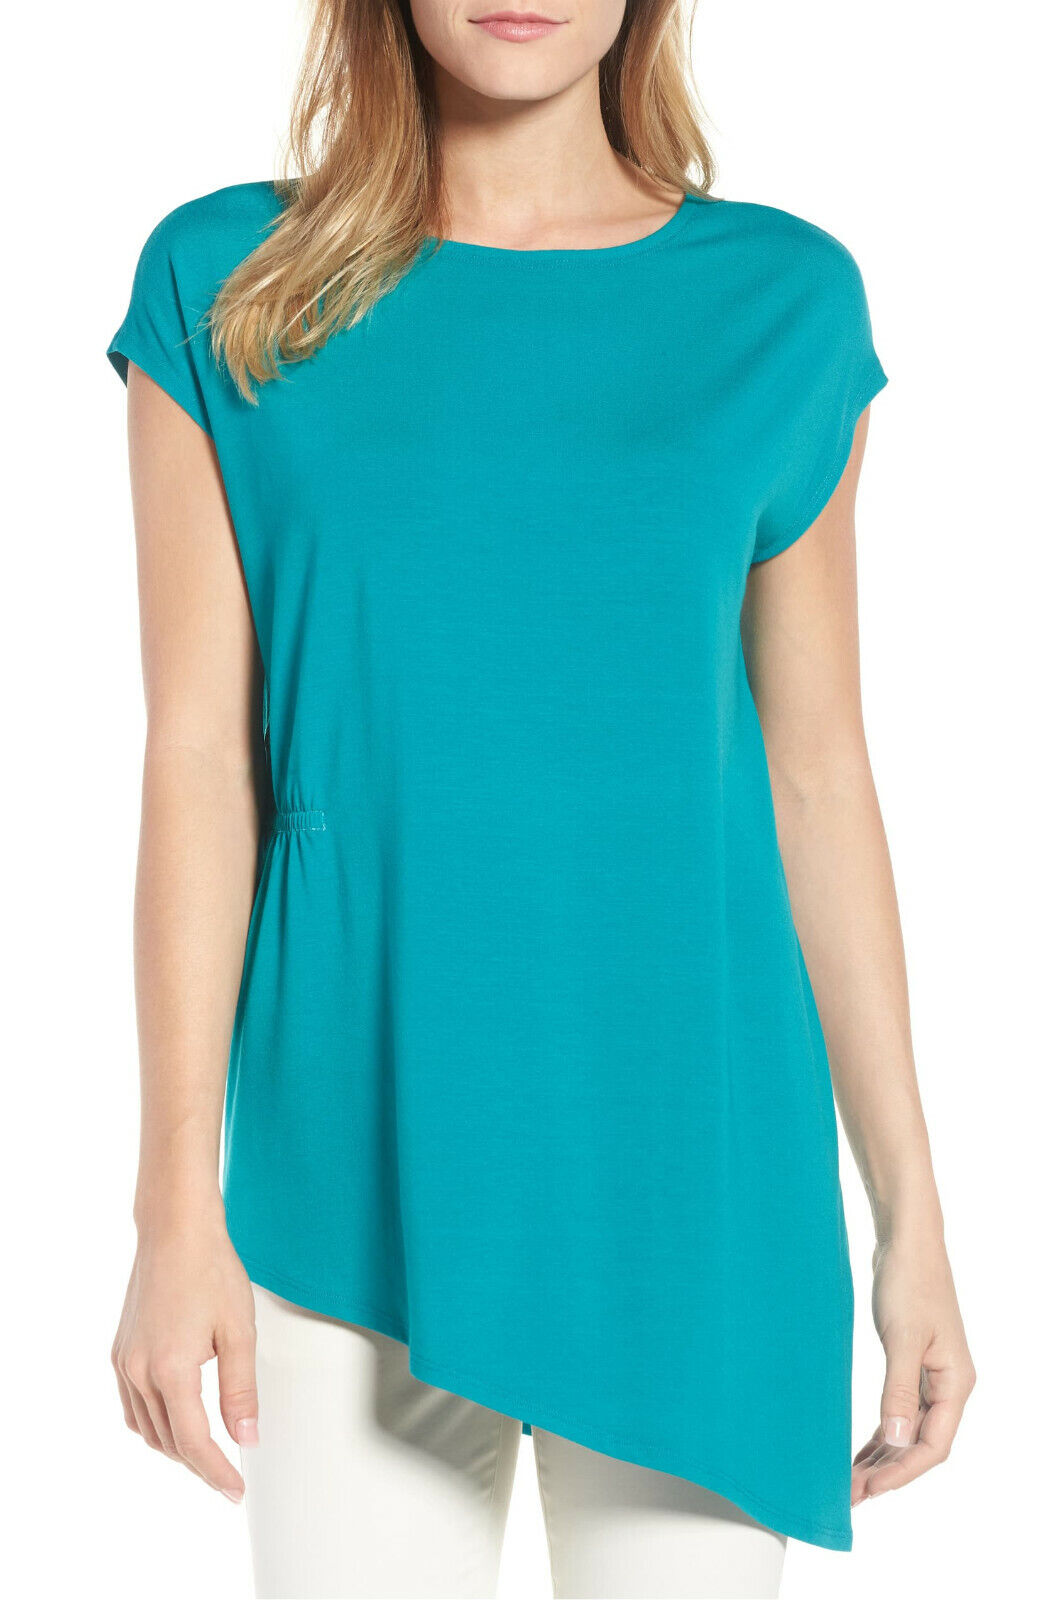 NEW  118 Eileen Fisher XS, S, L, XL Turquoise Stretch Jersey Asymmetrical Tunic